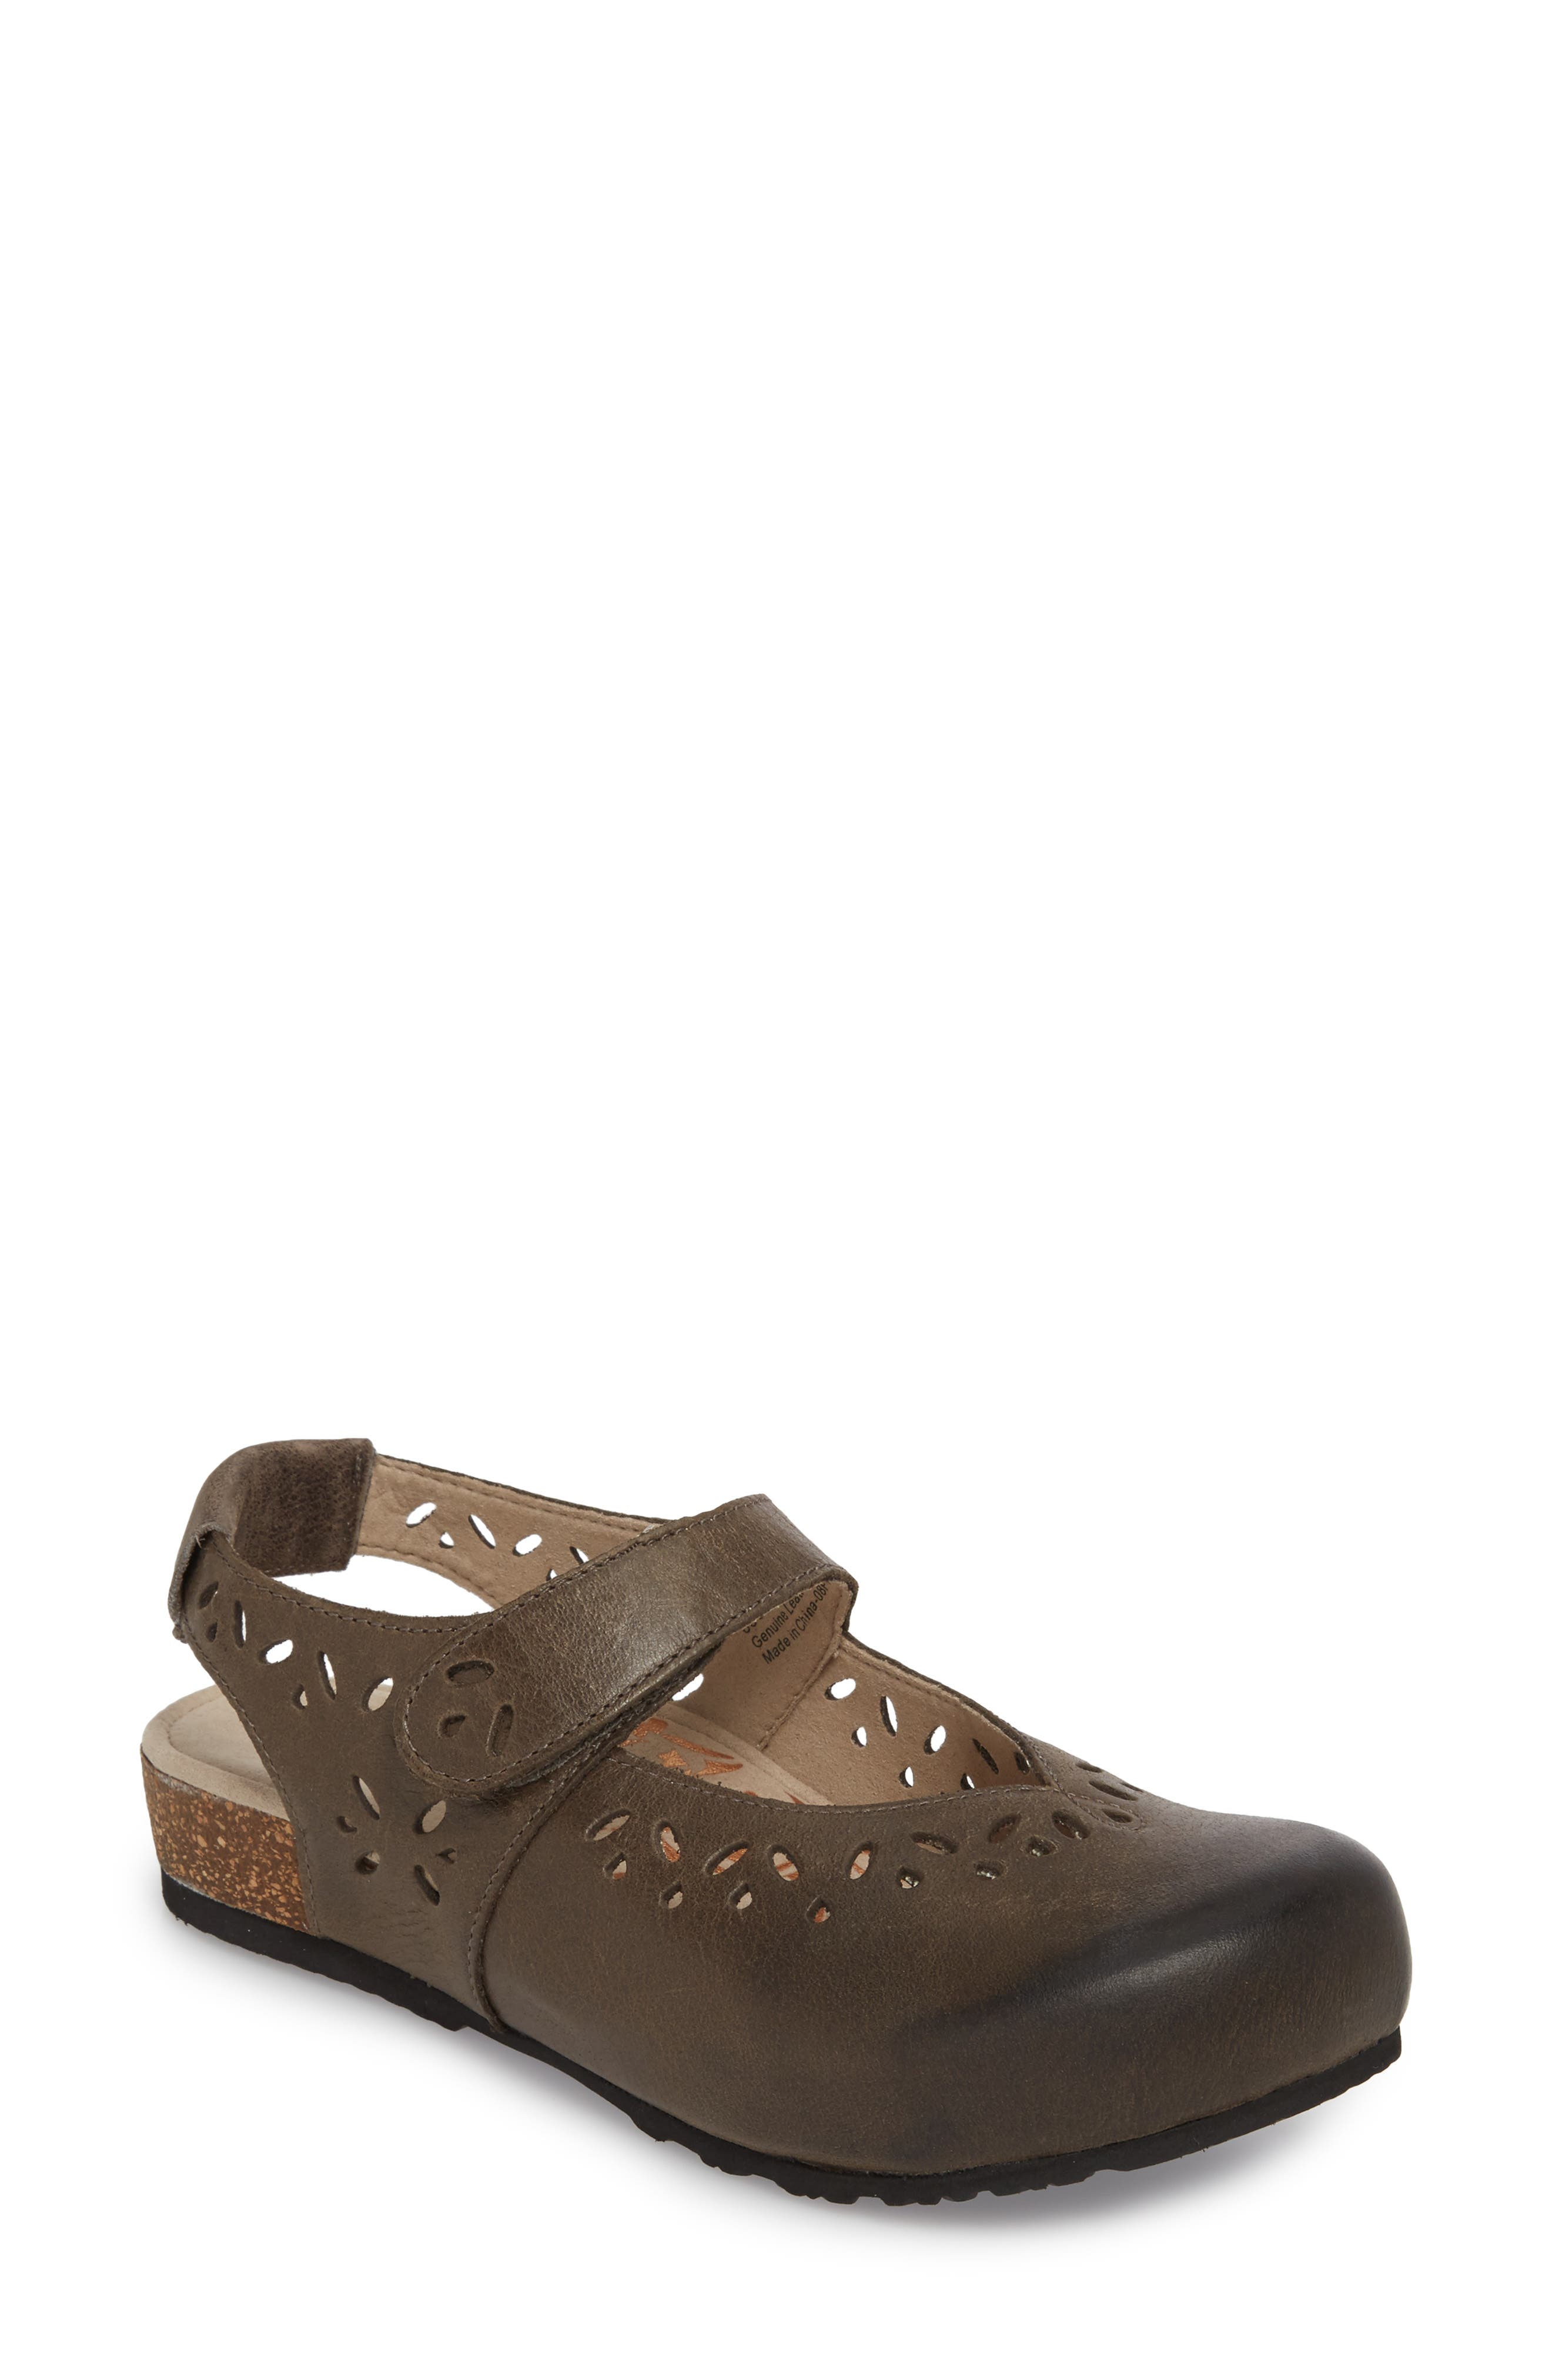 AETREX 'Cheryl' Mary Jane Flat, Main, color, IRON LEATHER